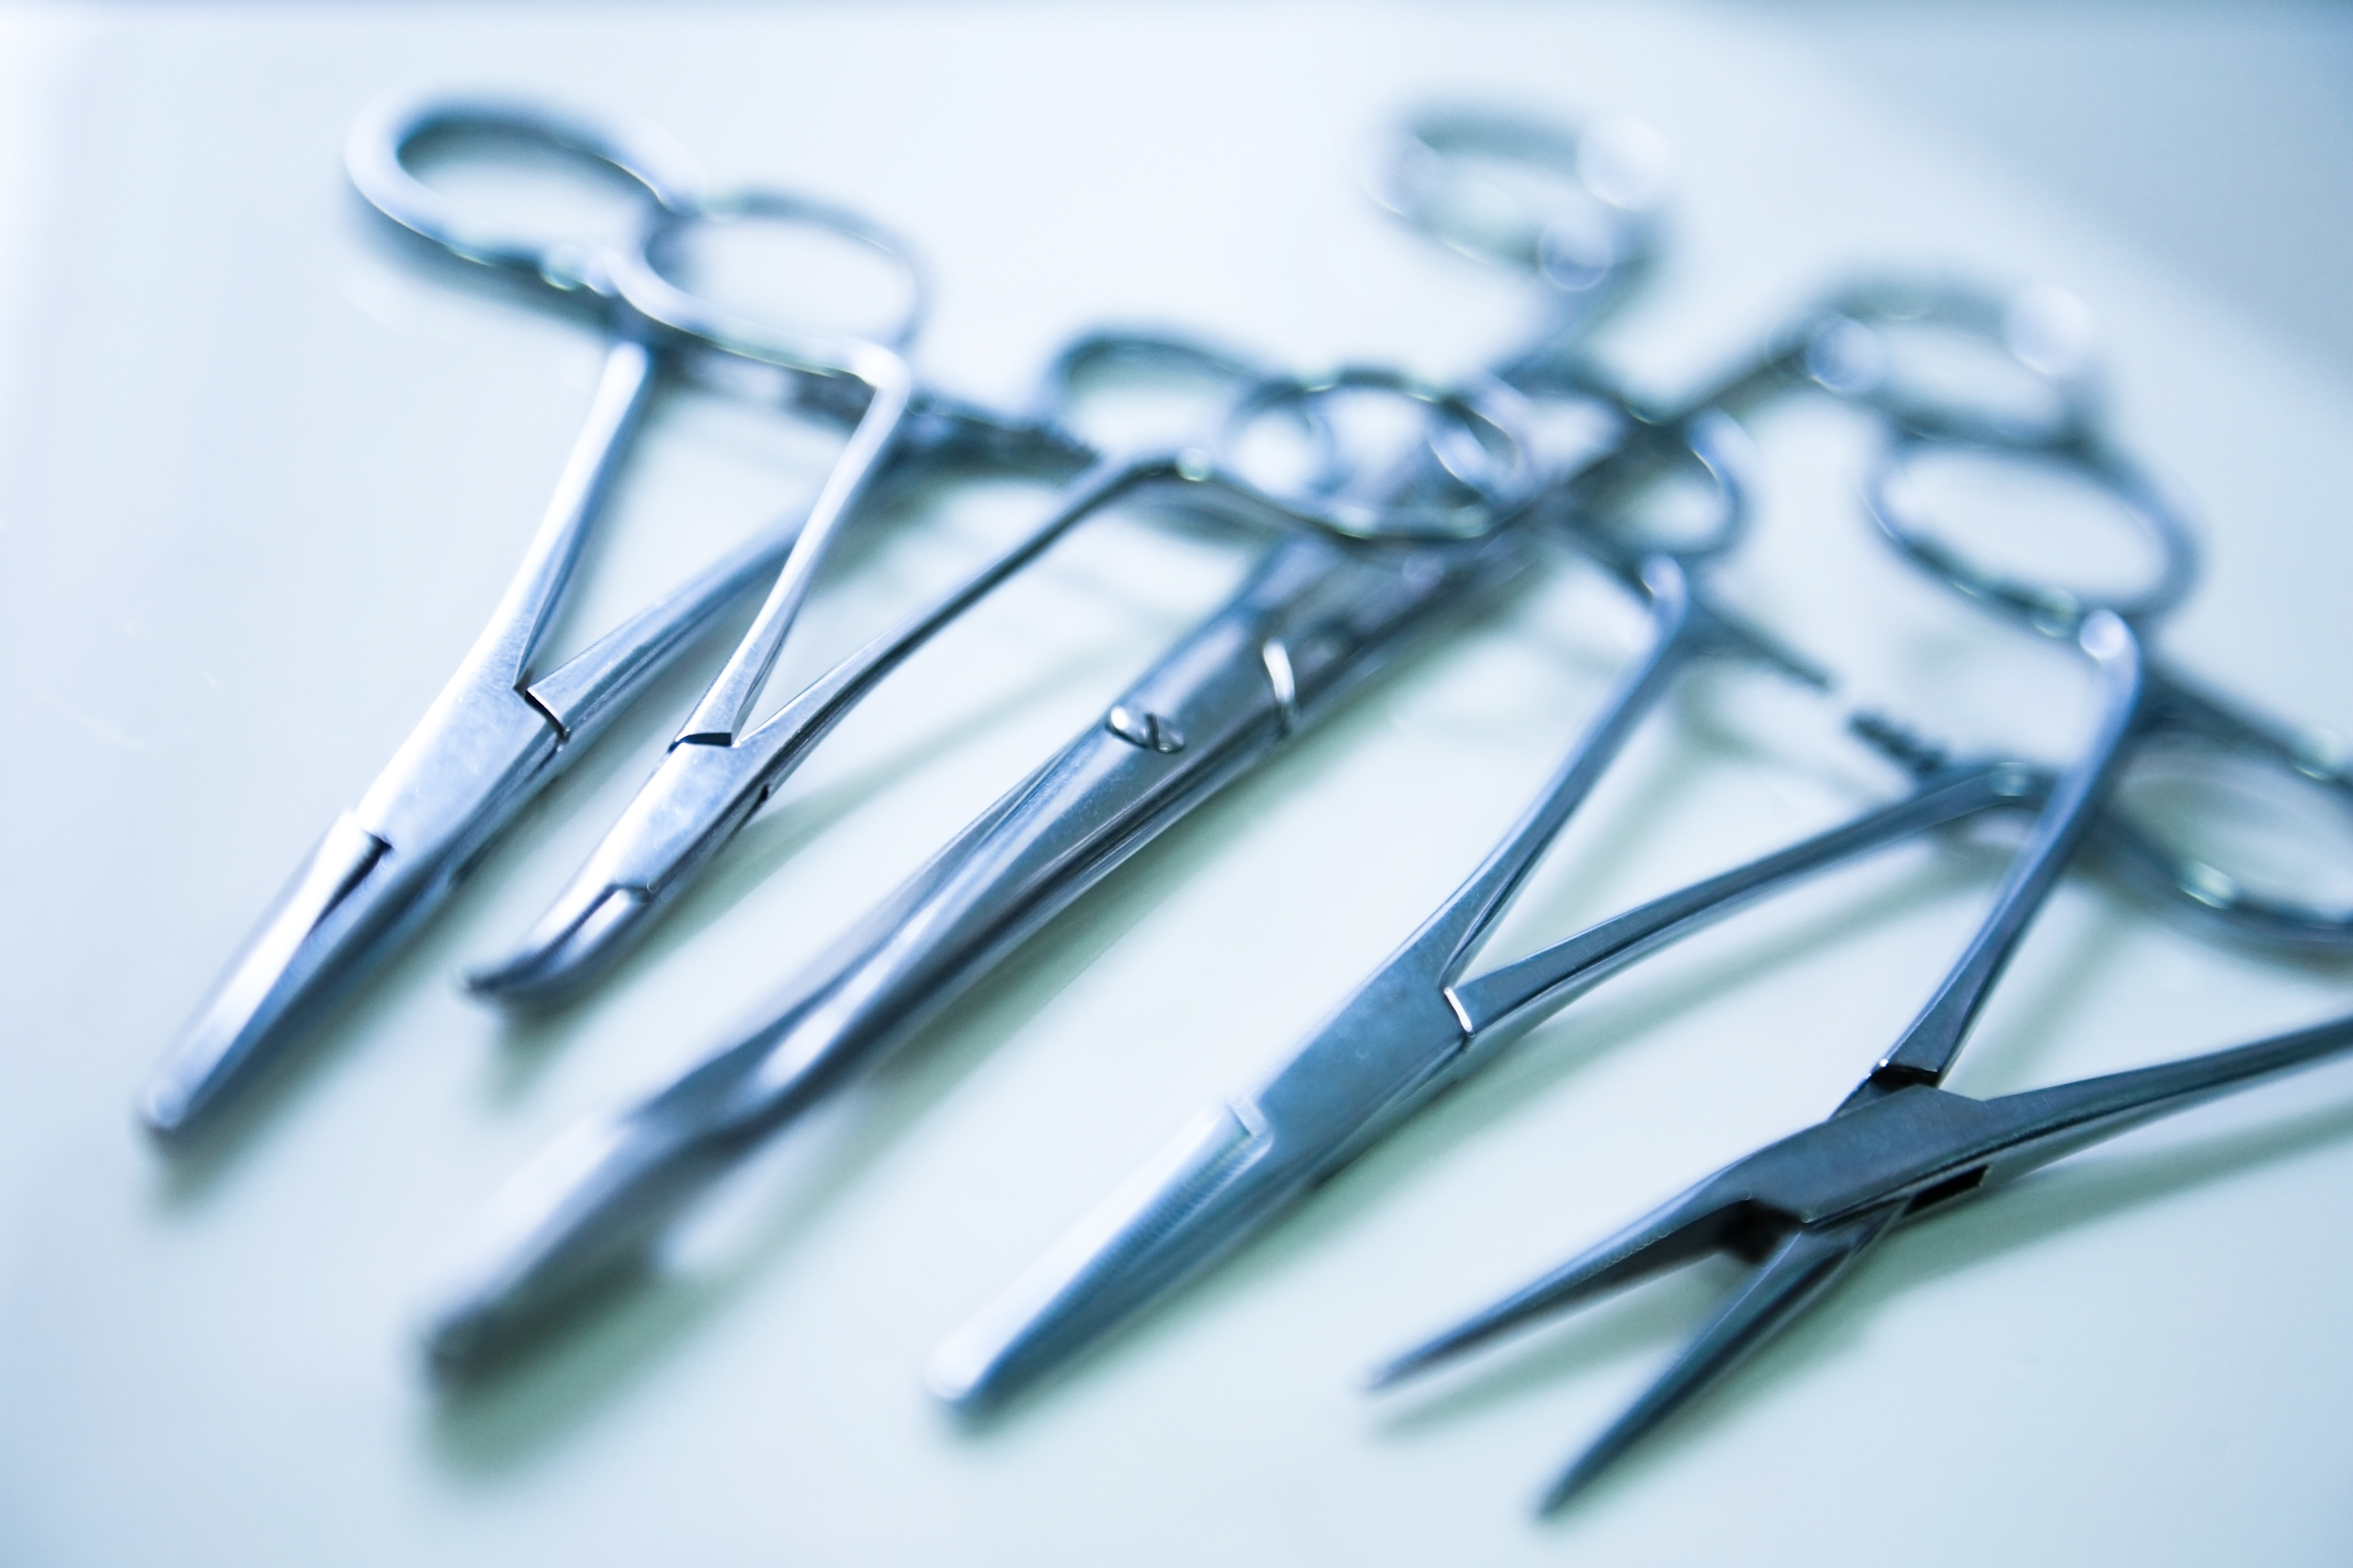 decontamination of surgical instruments